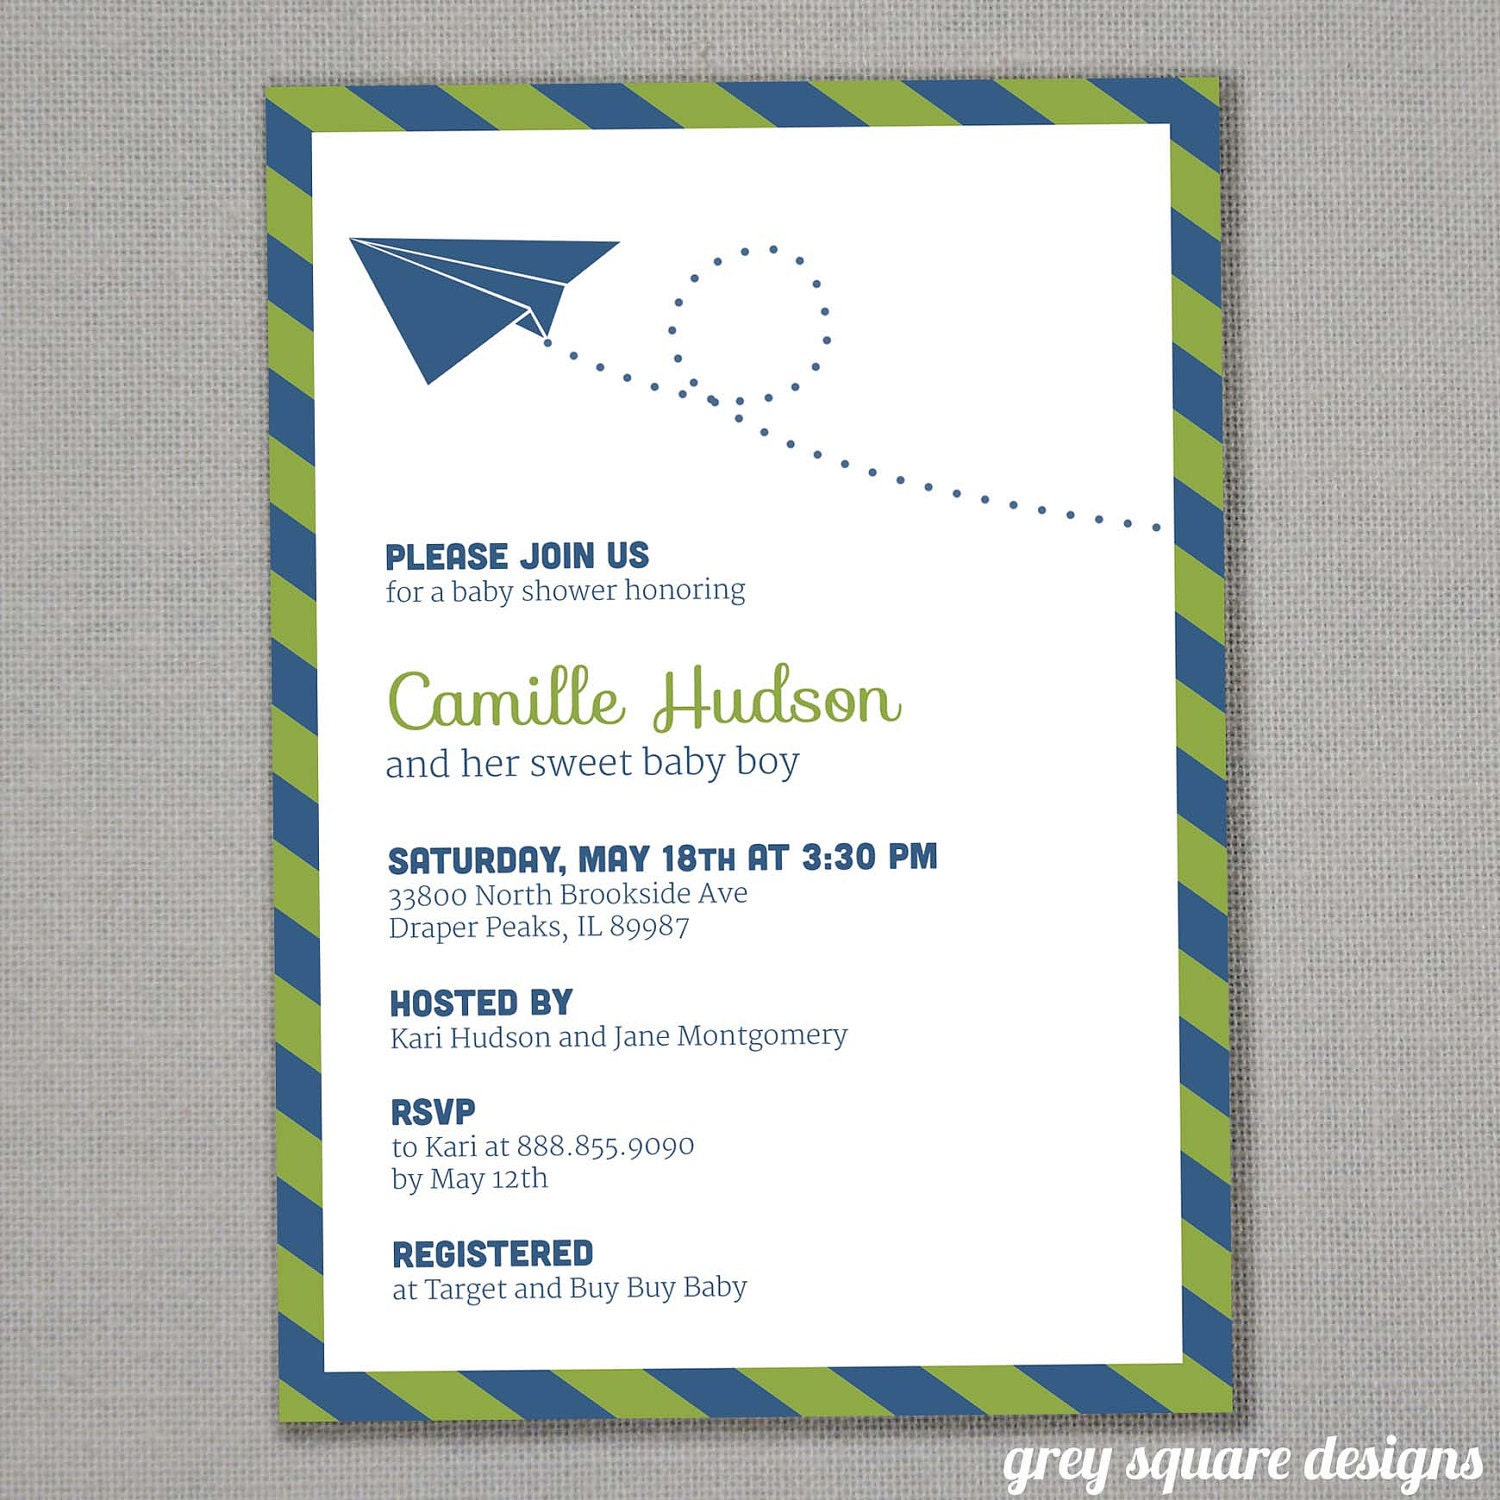 Airplane Invitations for perfect invitations example